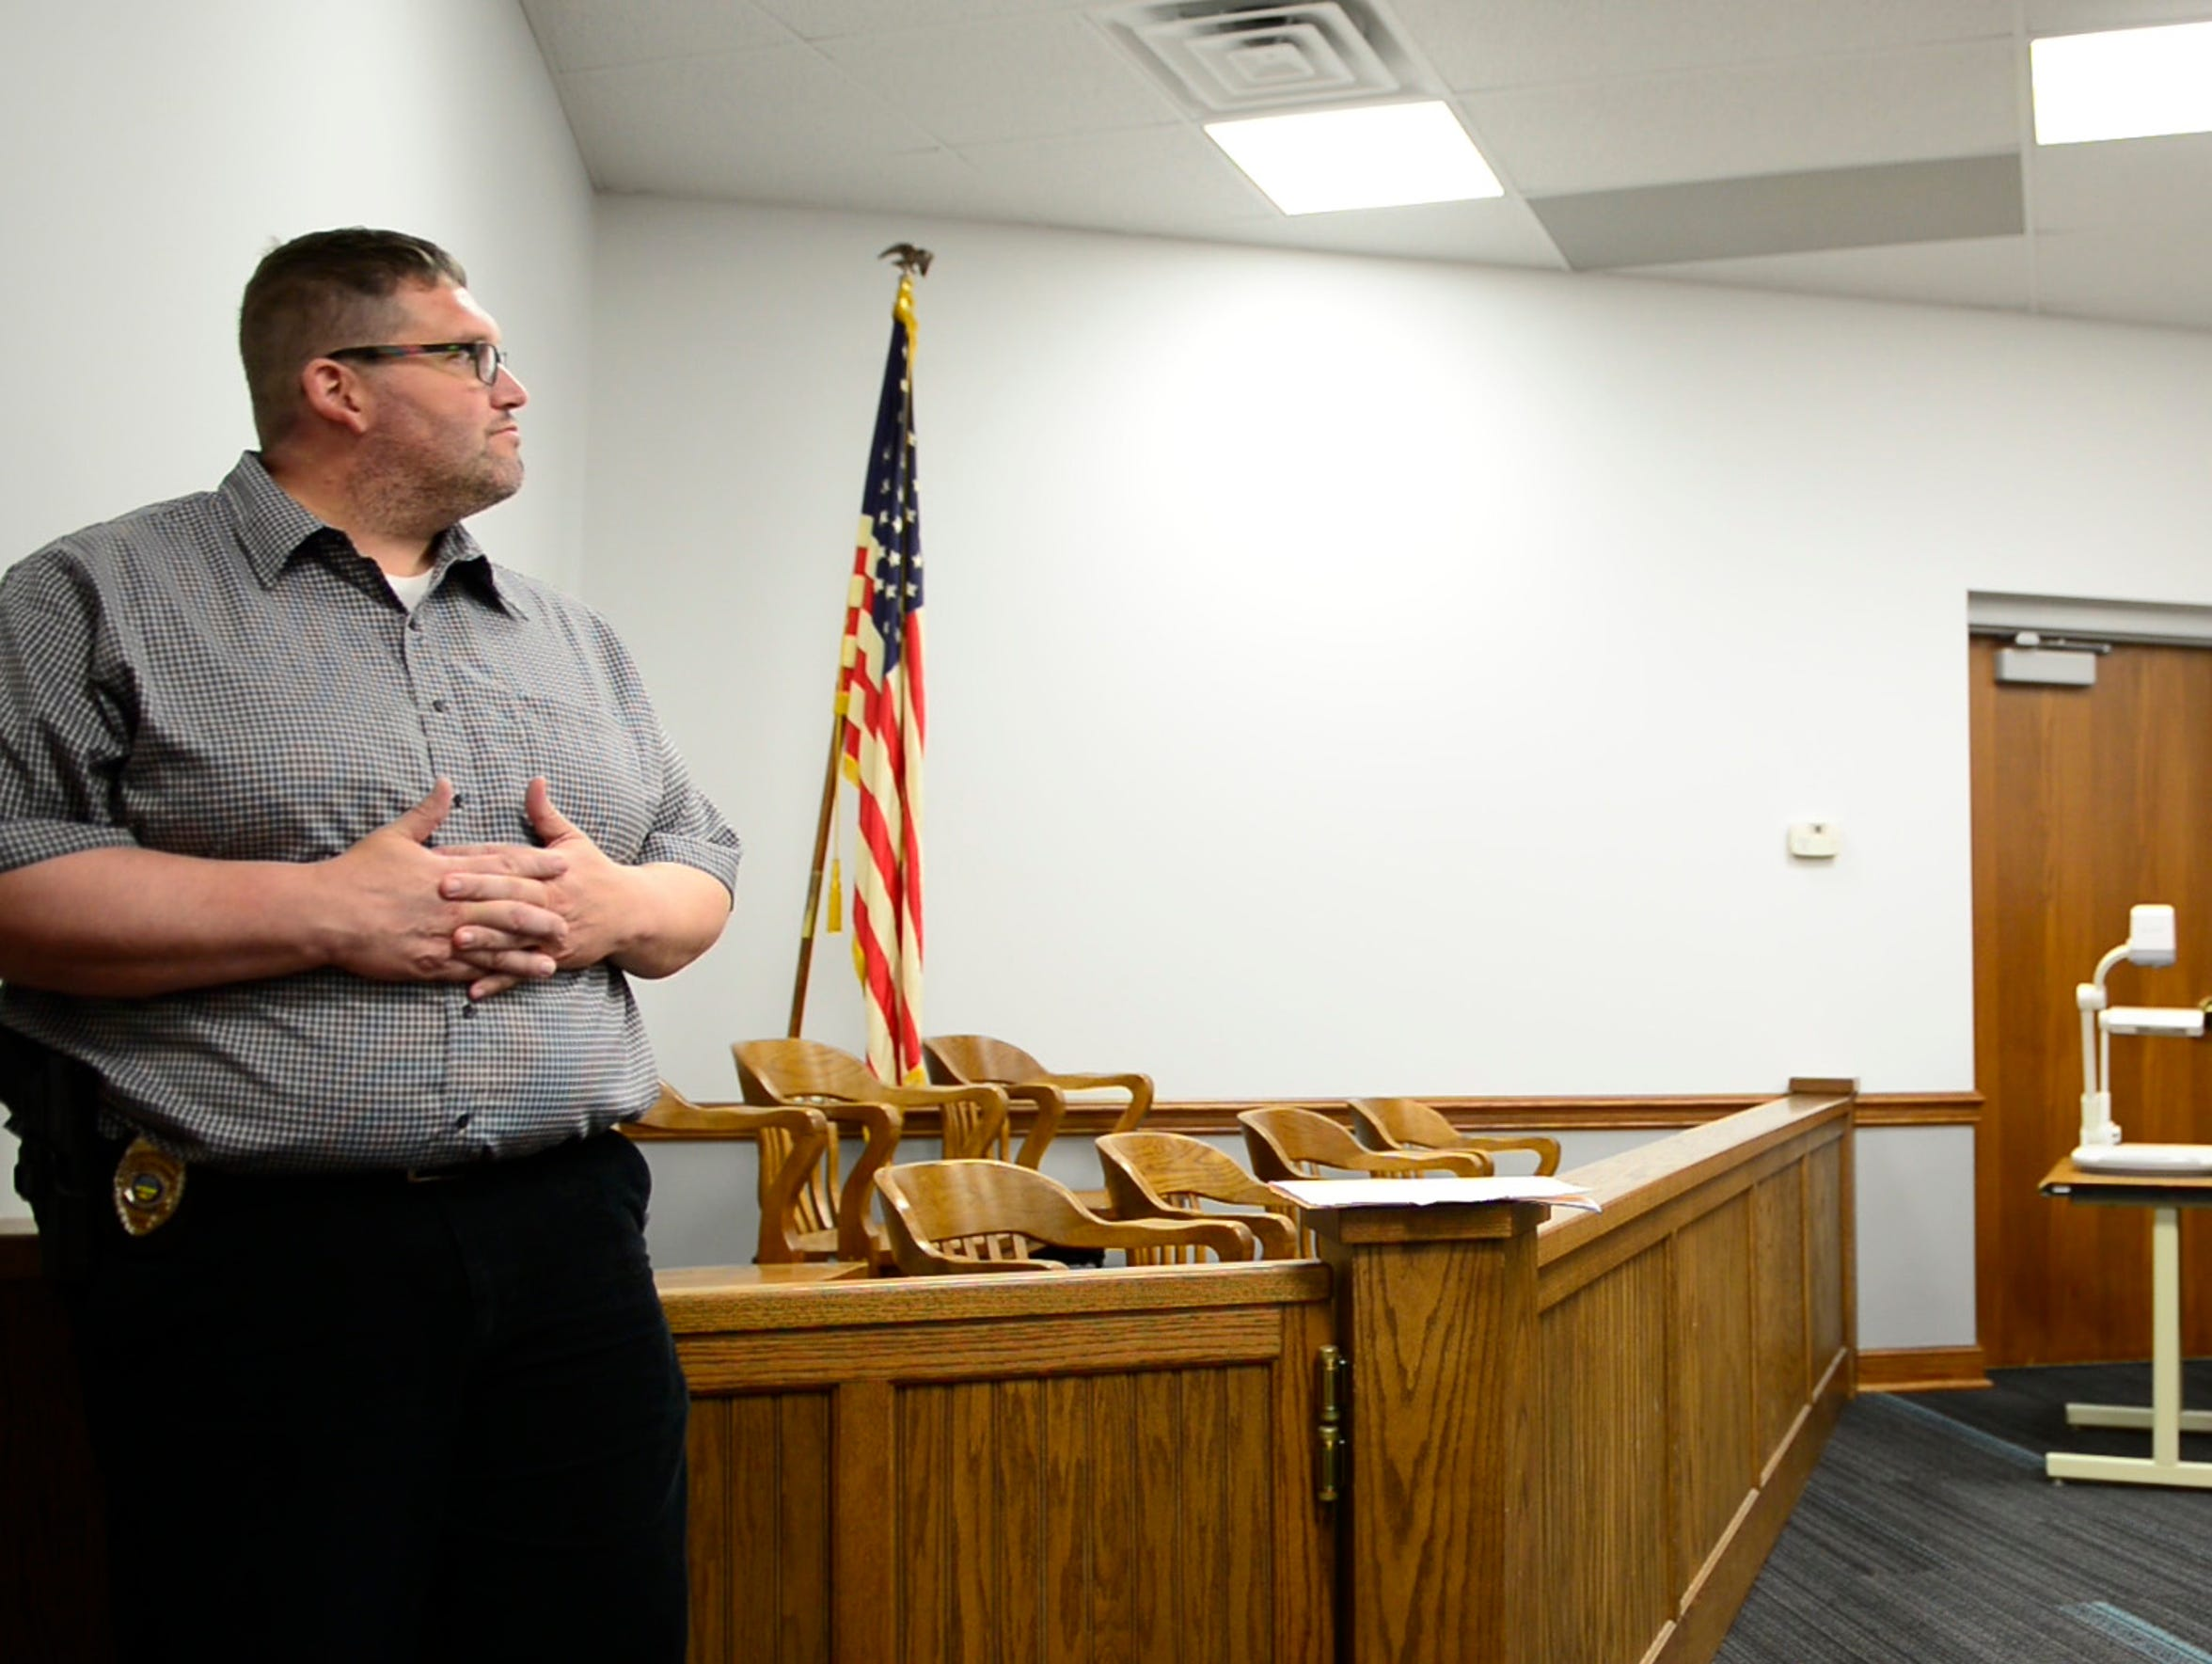 Probation officer Jeremy Greene looks on as Judge John